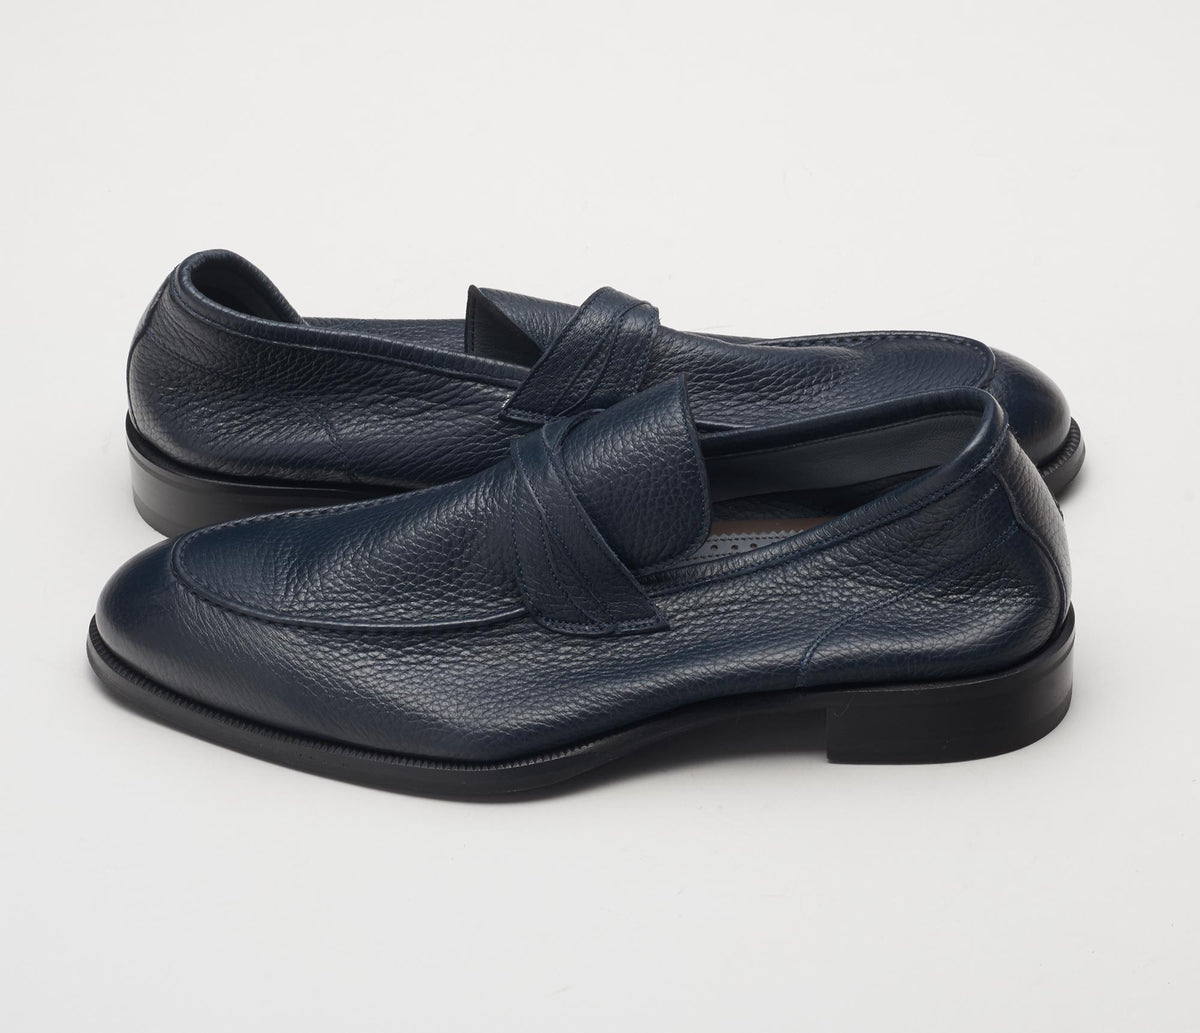 Modena Cervo Loafer in Navy